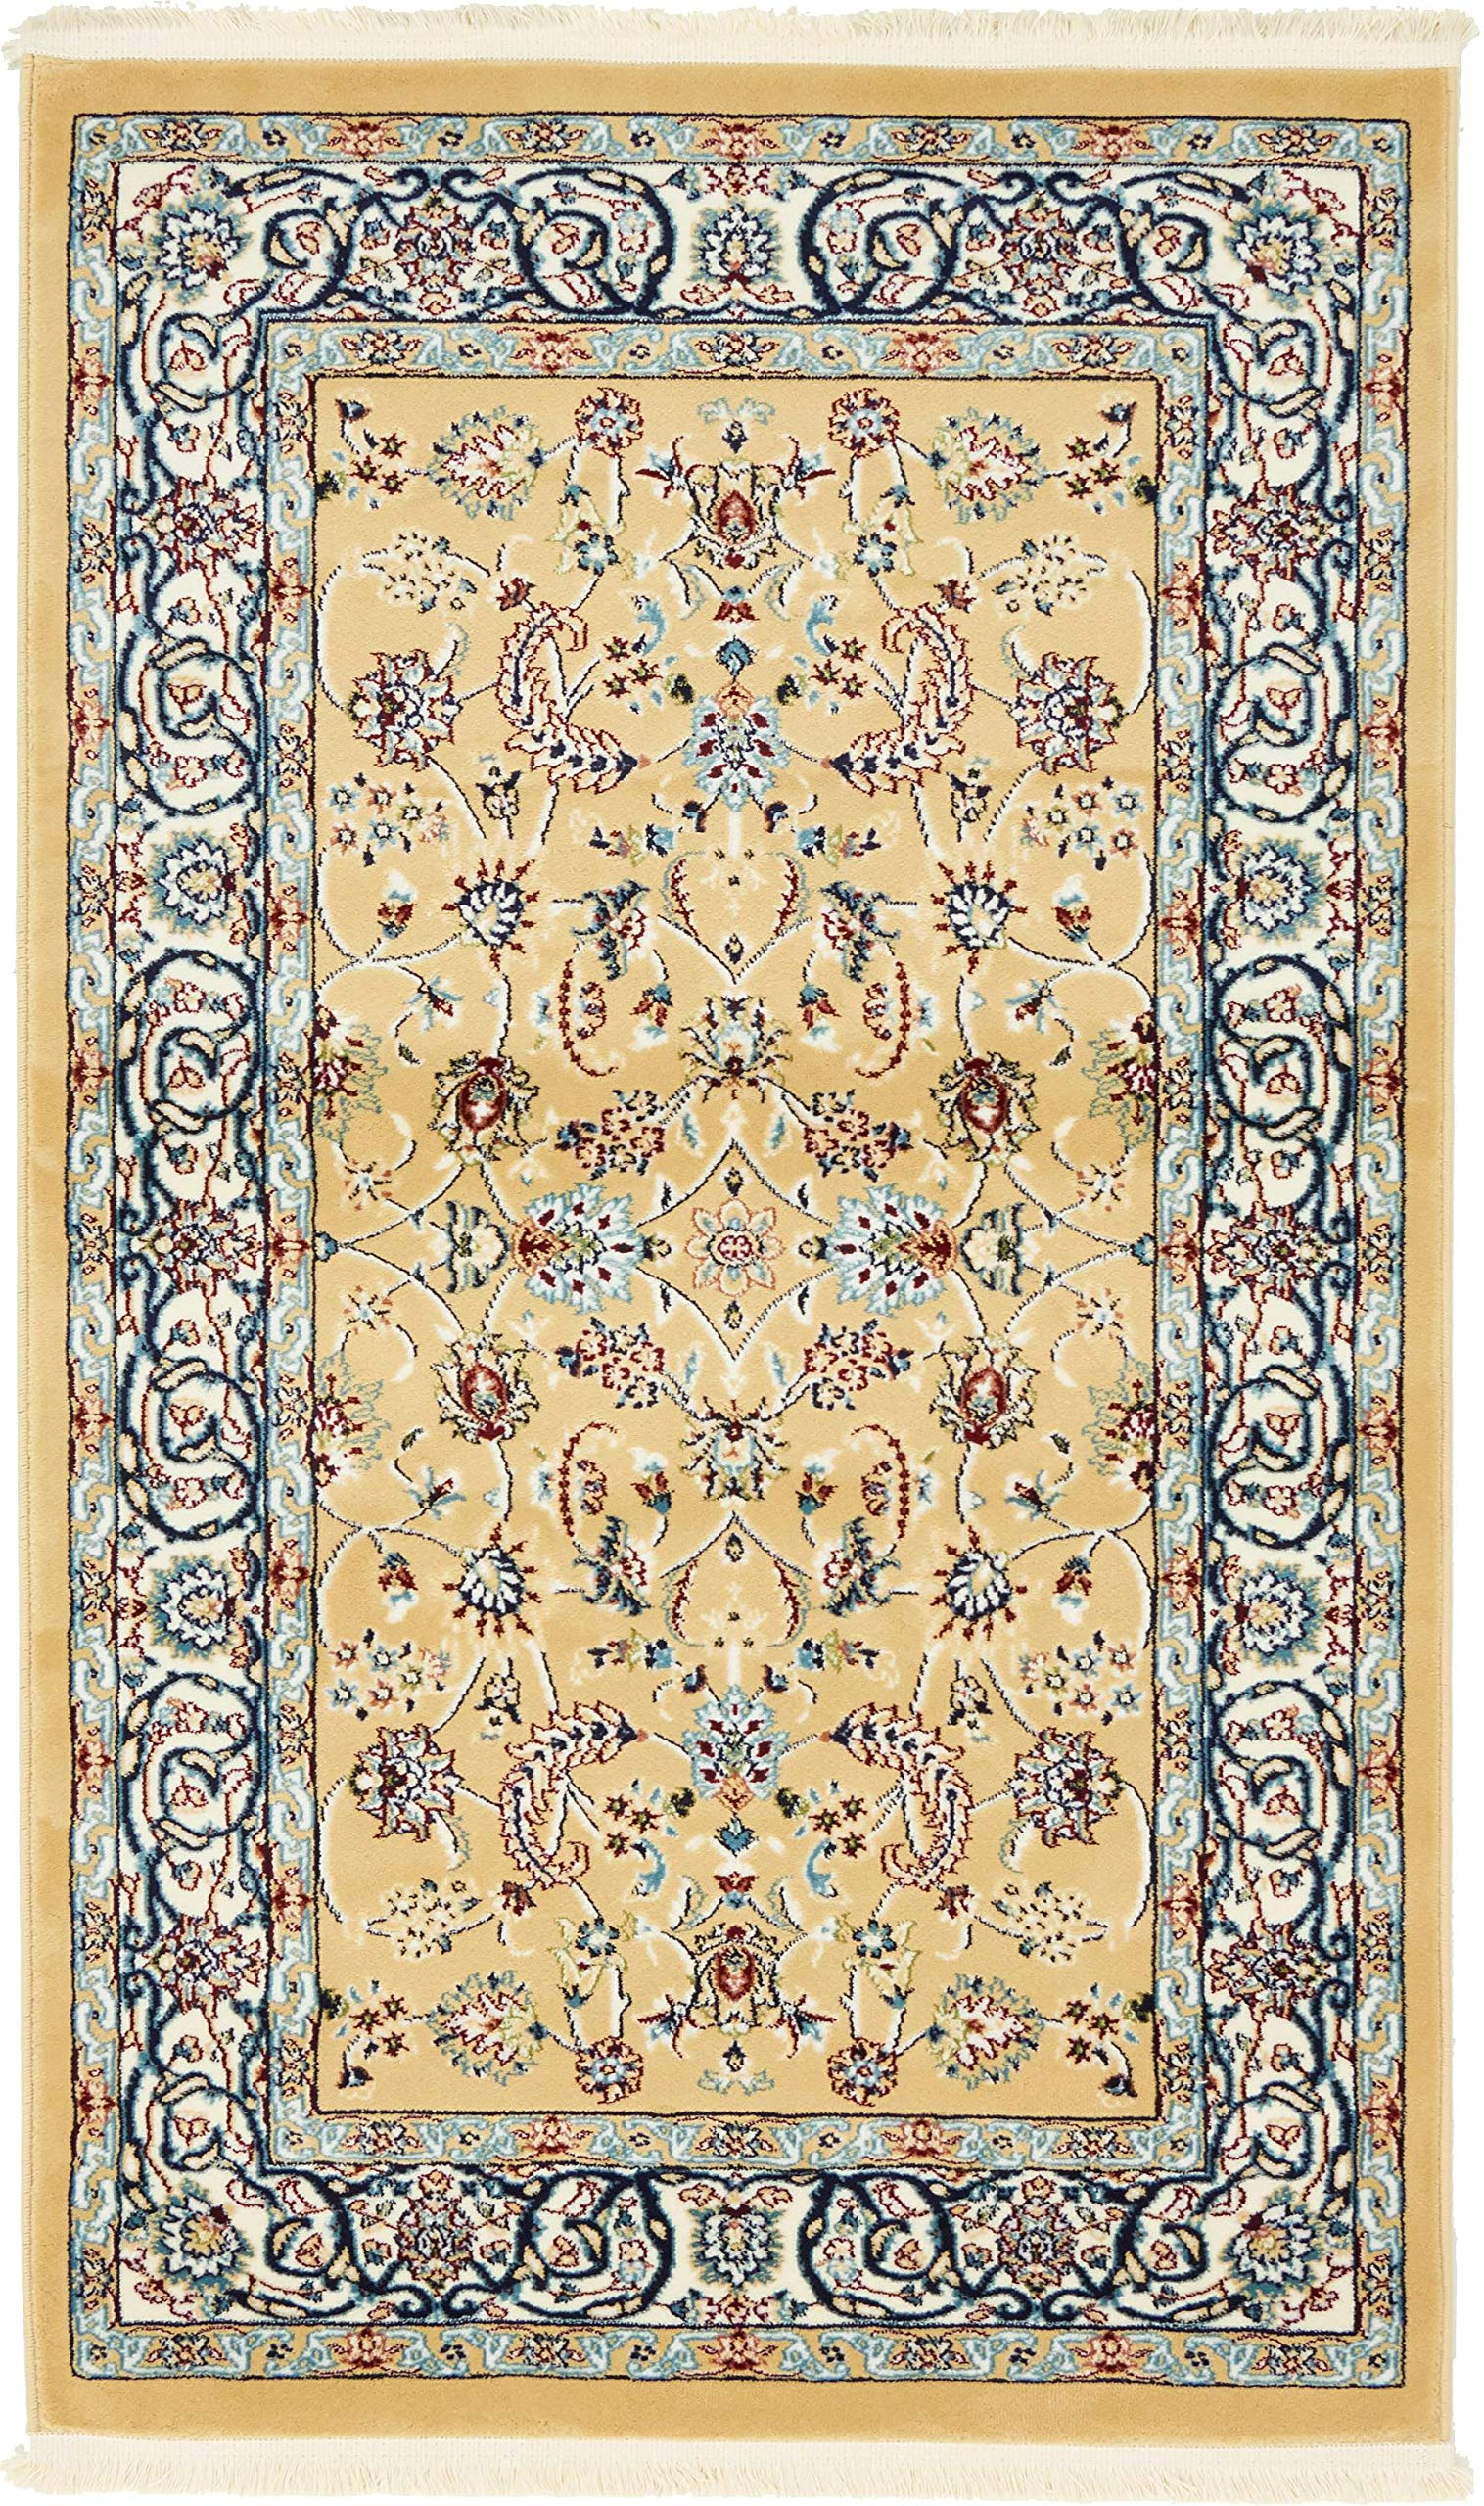 Unique Loom Narenj Collection Classic Traditional Repeating Pattern Beige Area Rug (3' 0 x 5' 0)